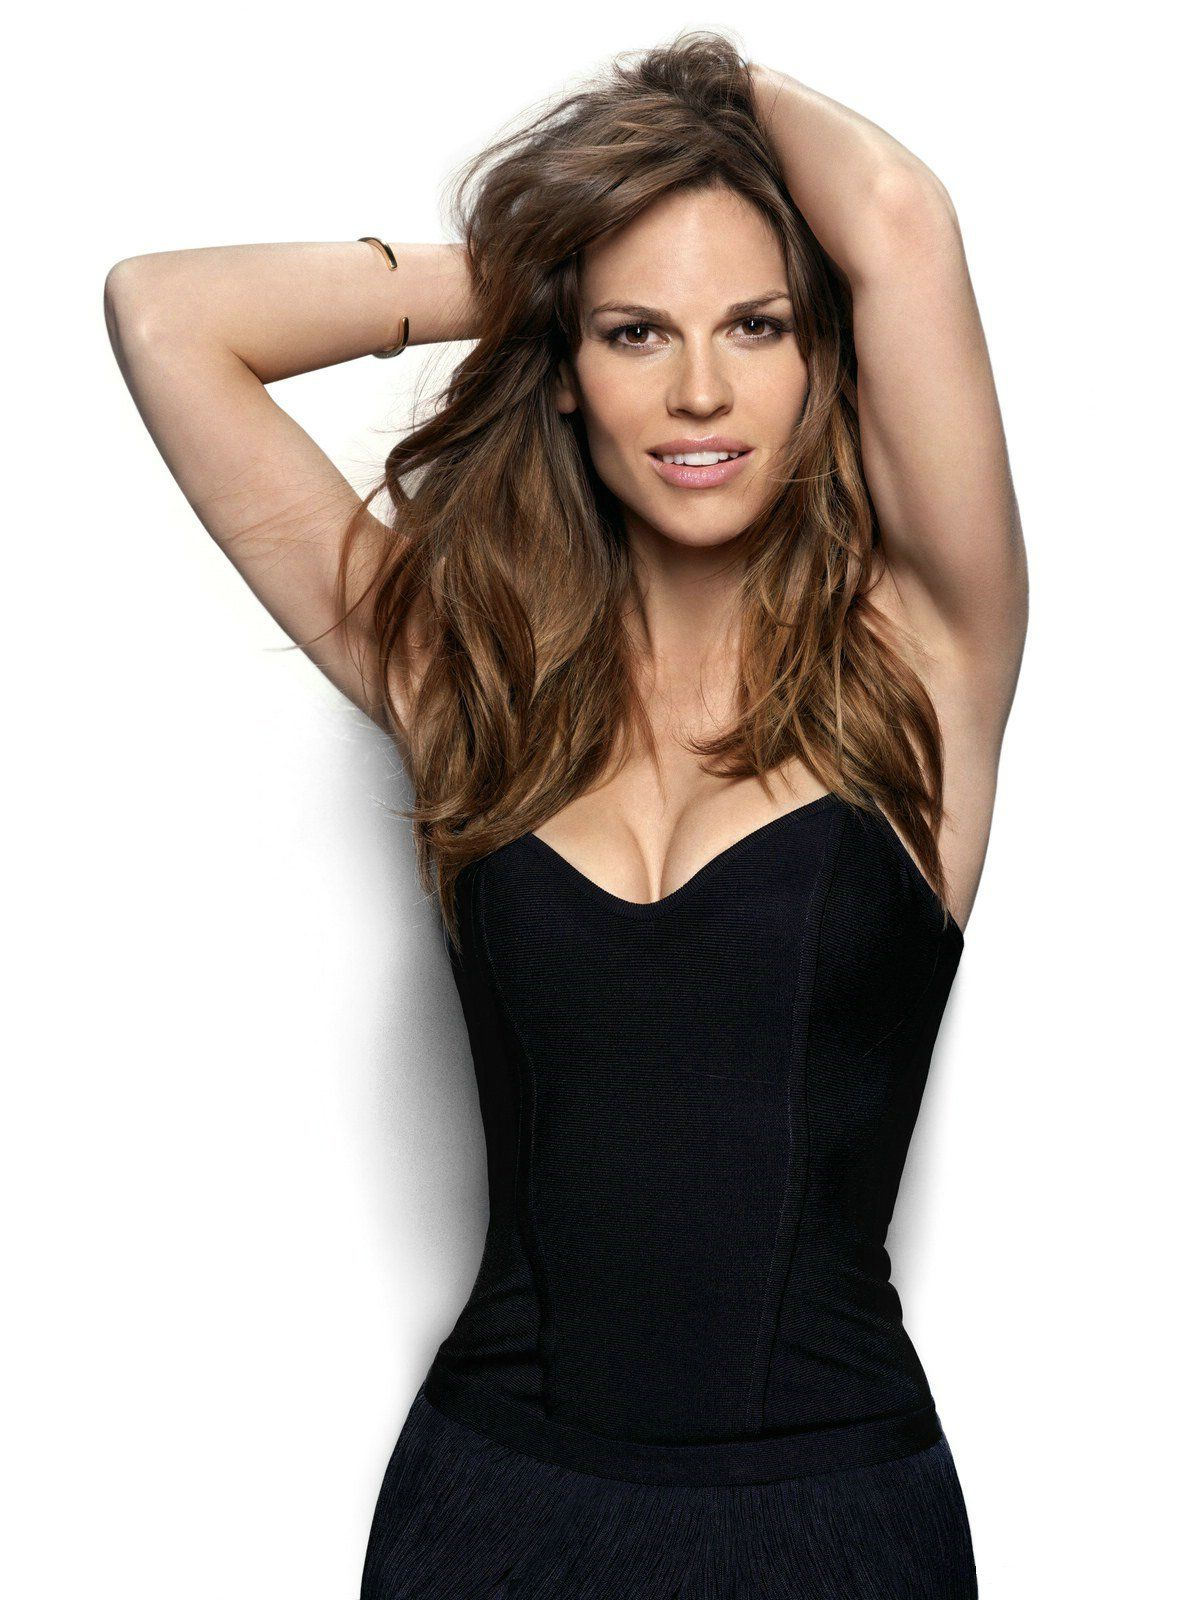 Hillary Swank - Gallery Colection